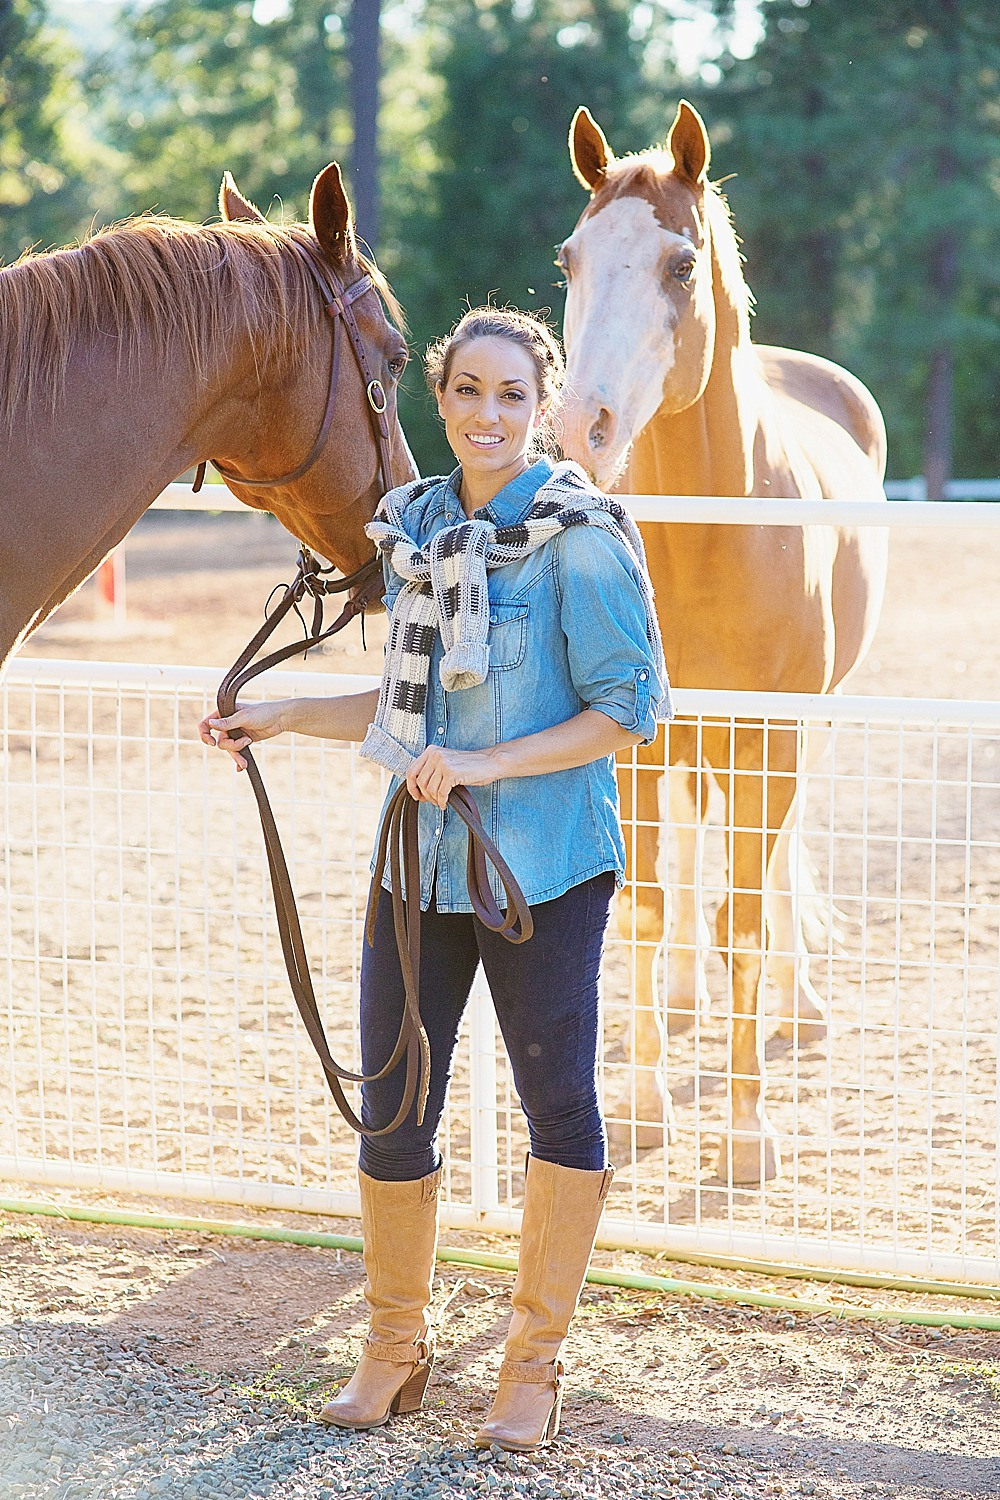 rachel-equestrian-grass-valley-diana-elizabeth-photography-207